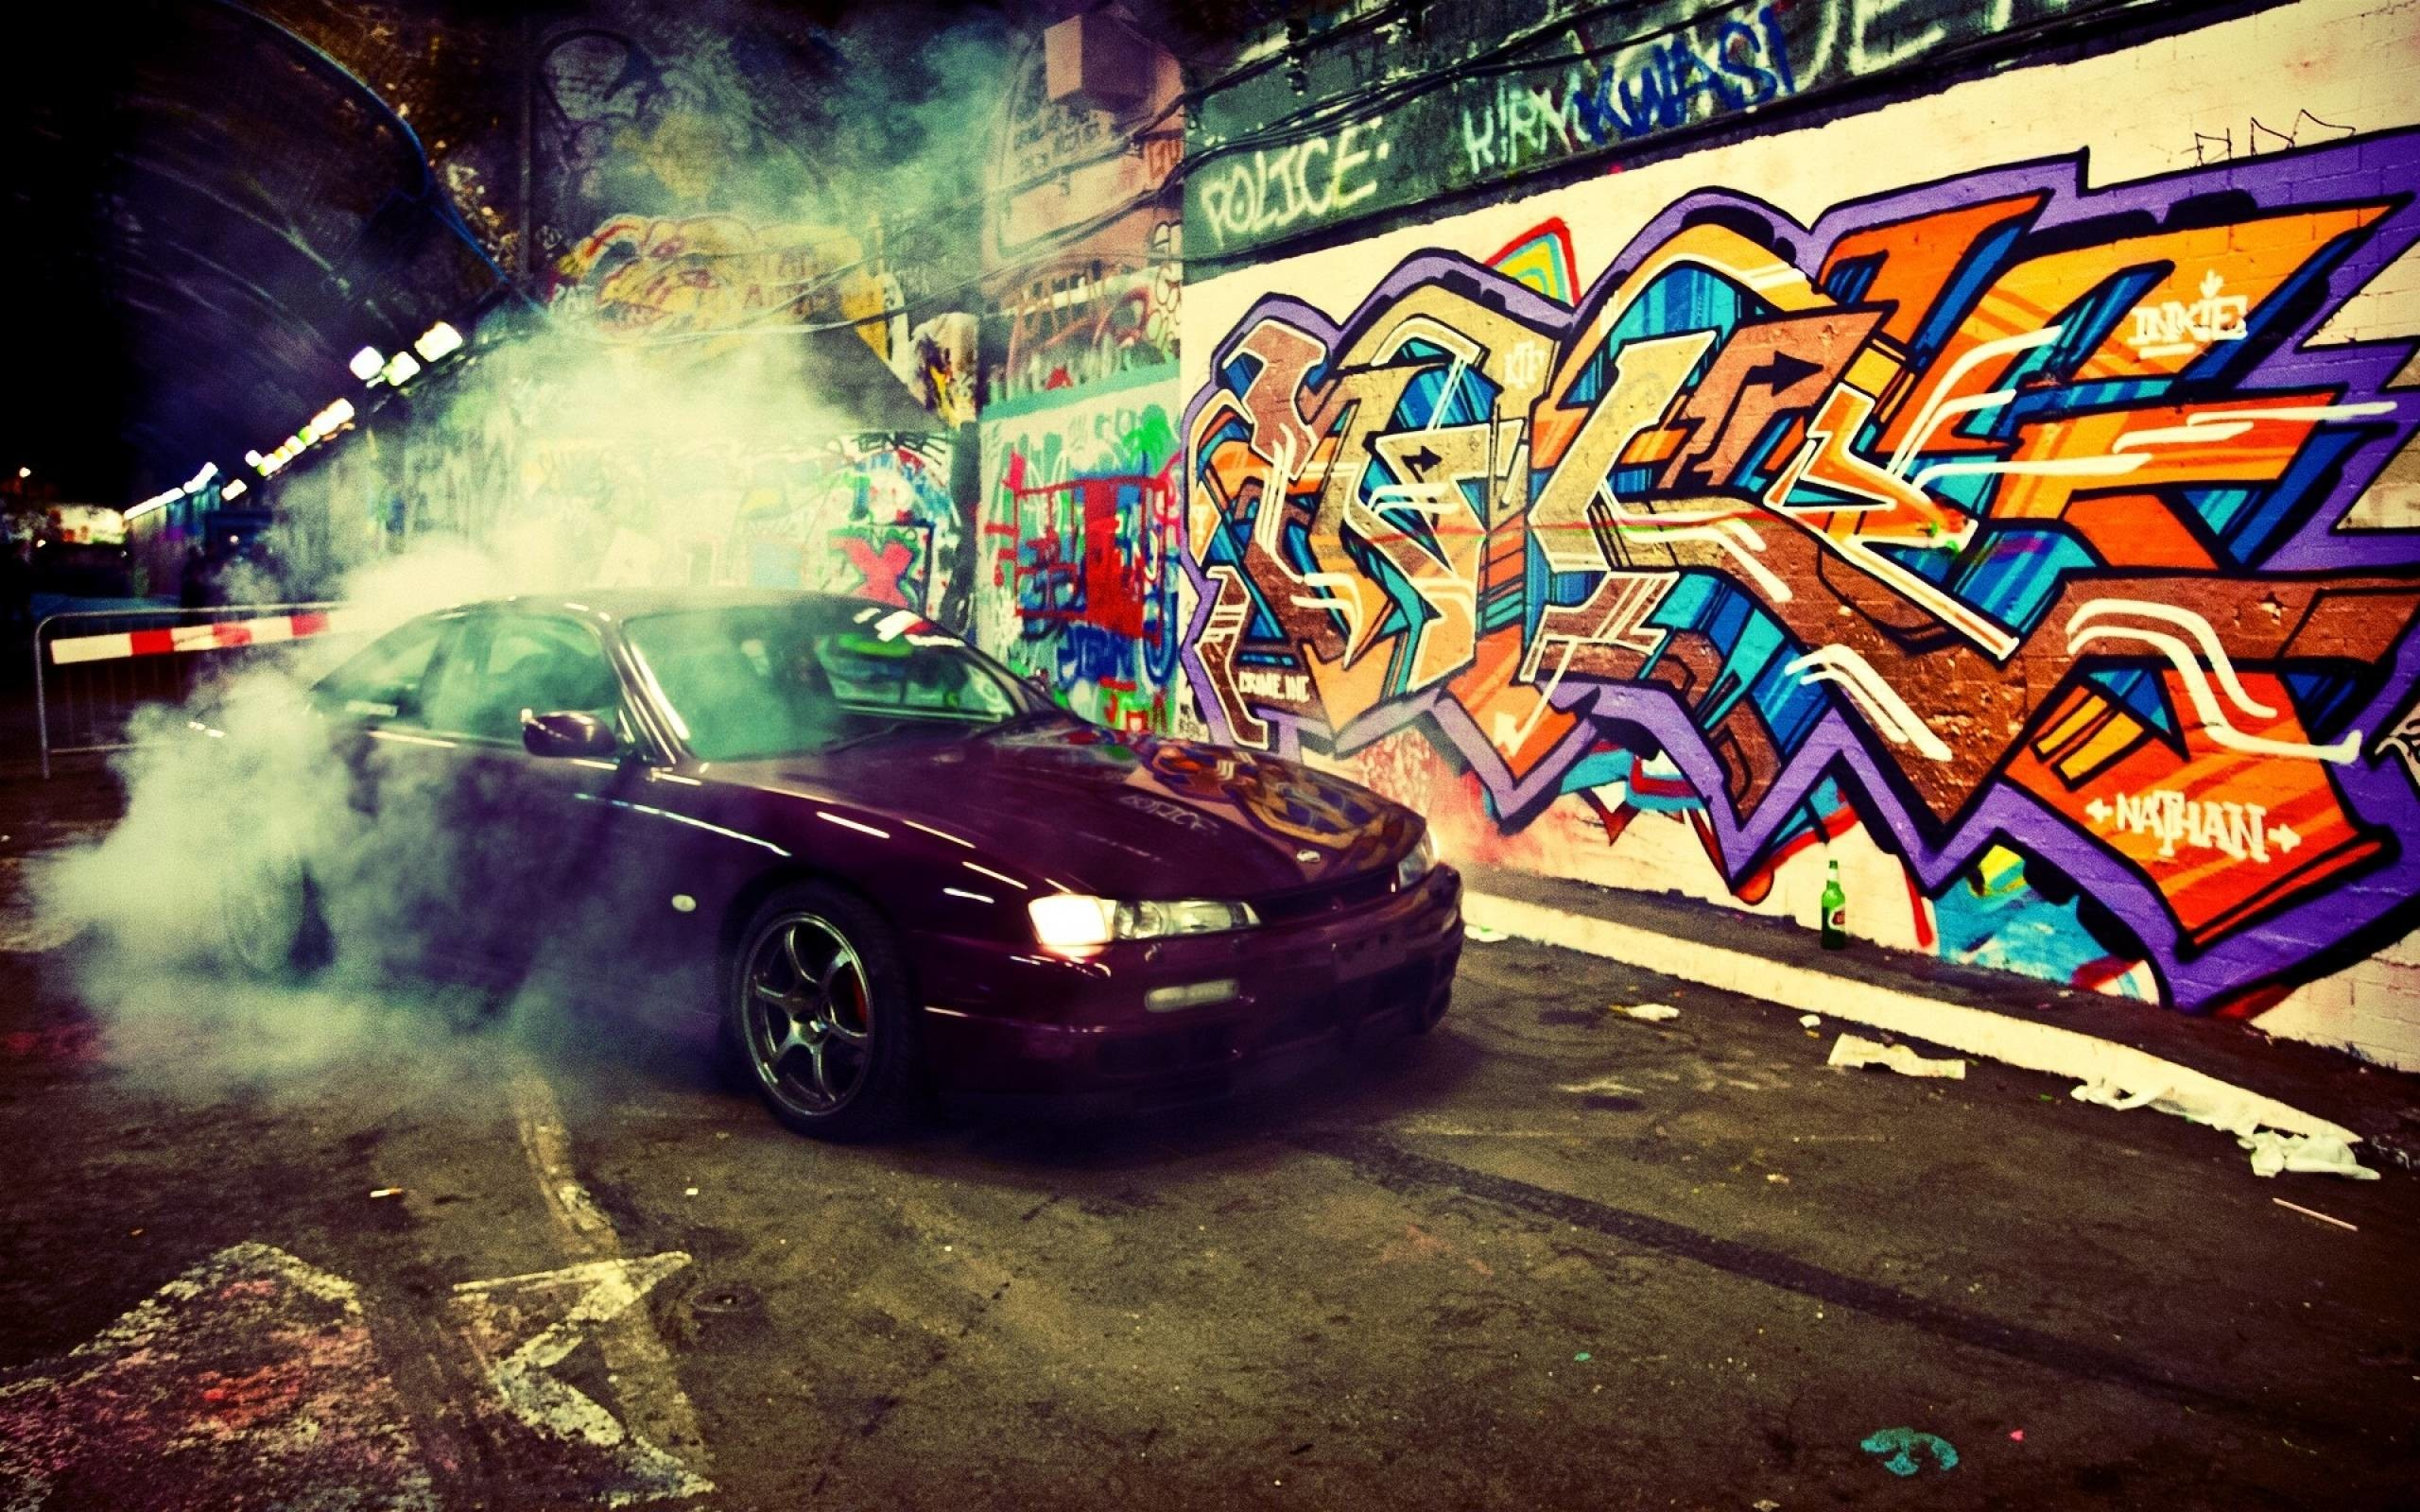 Cars-Smoke-Graffiti-Wallpaper graffiti wallpaper HD free .